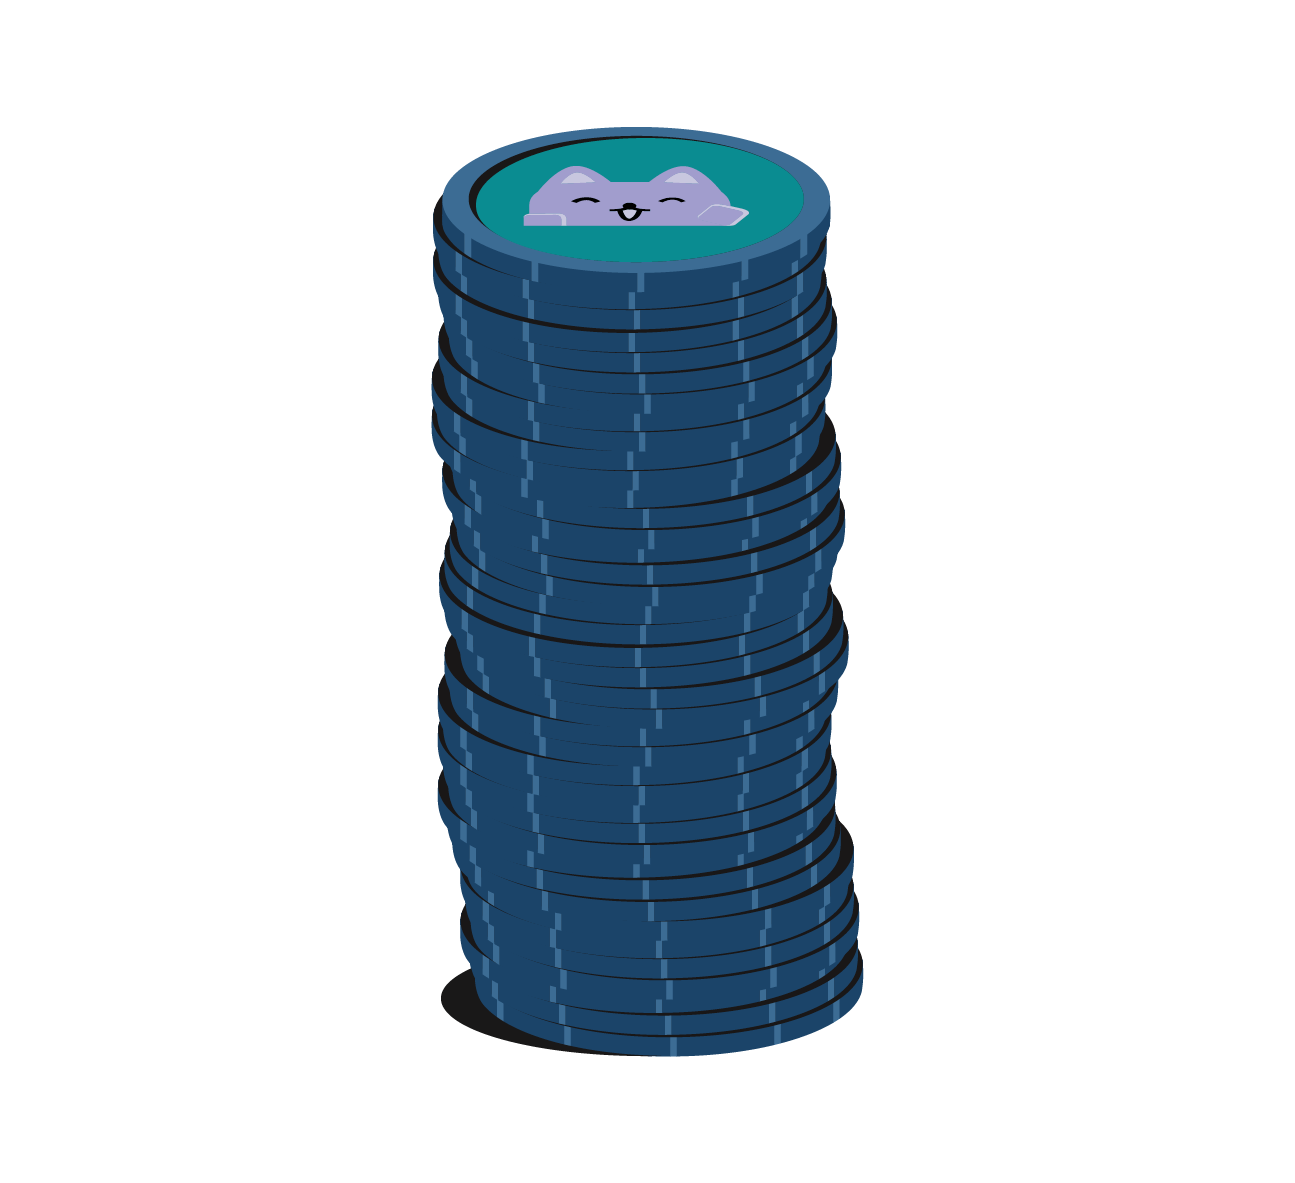 a stack of 40 tokens